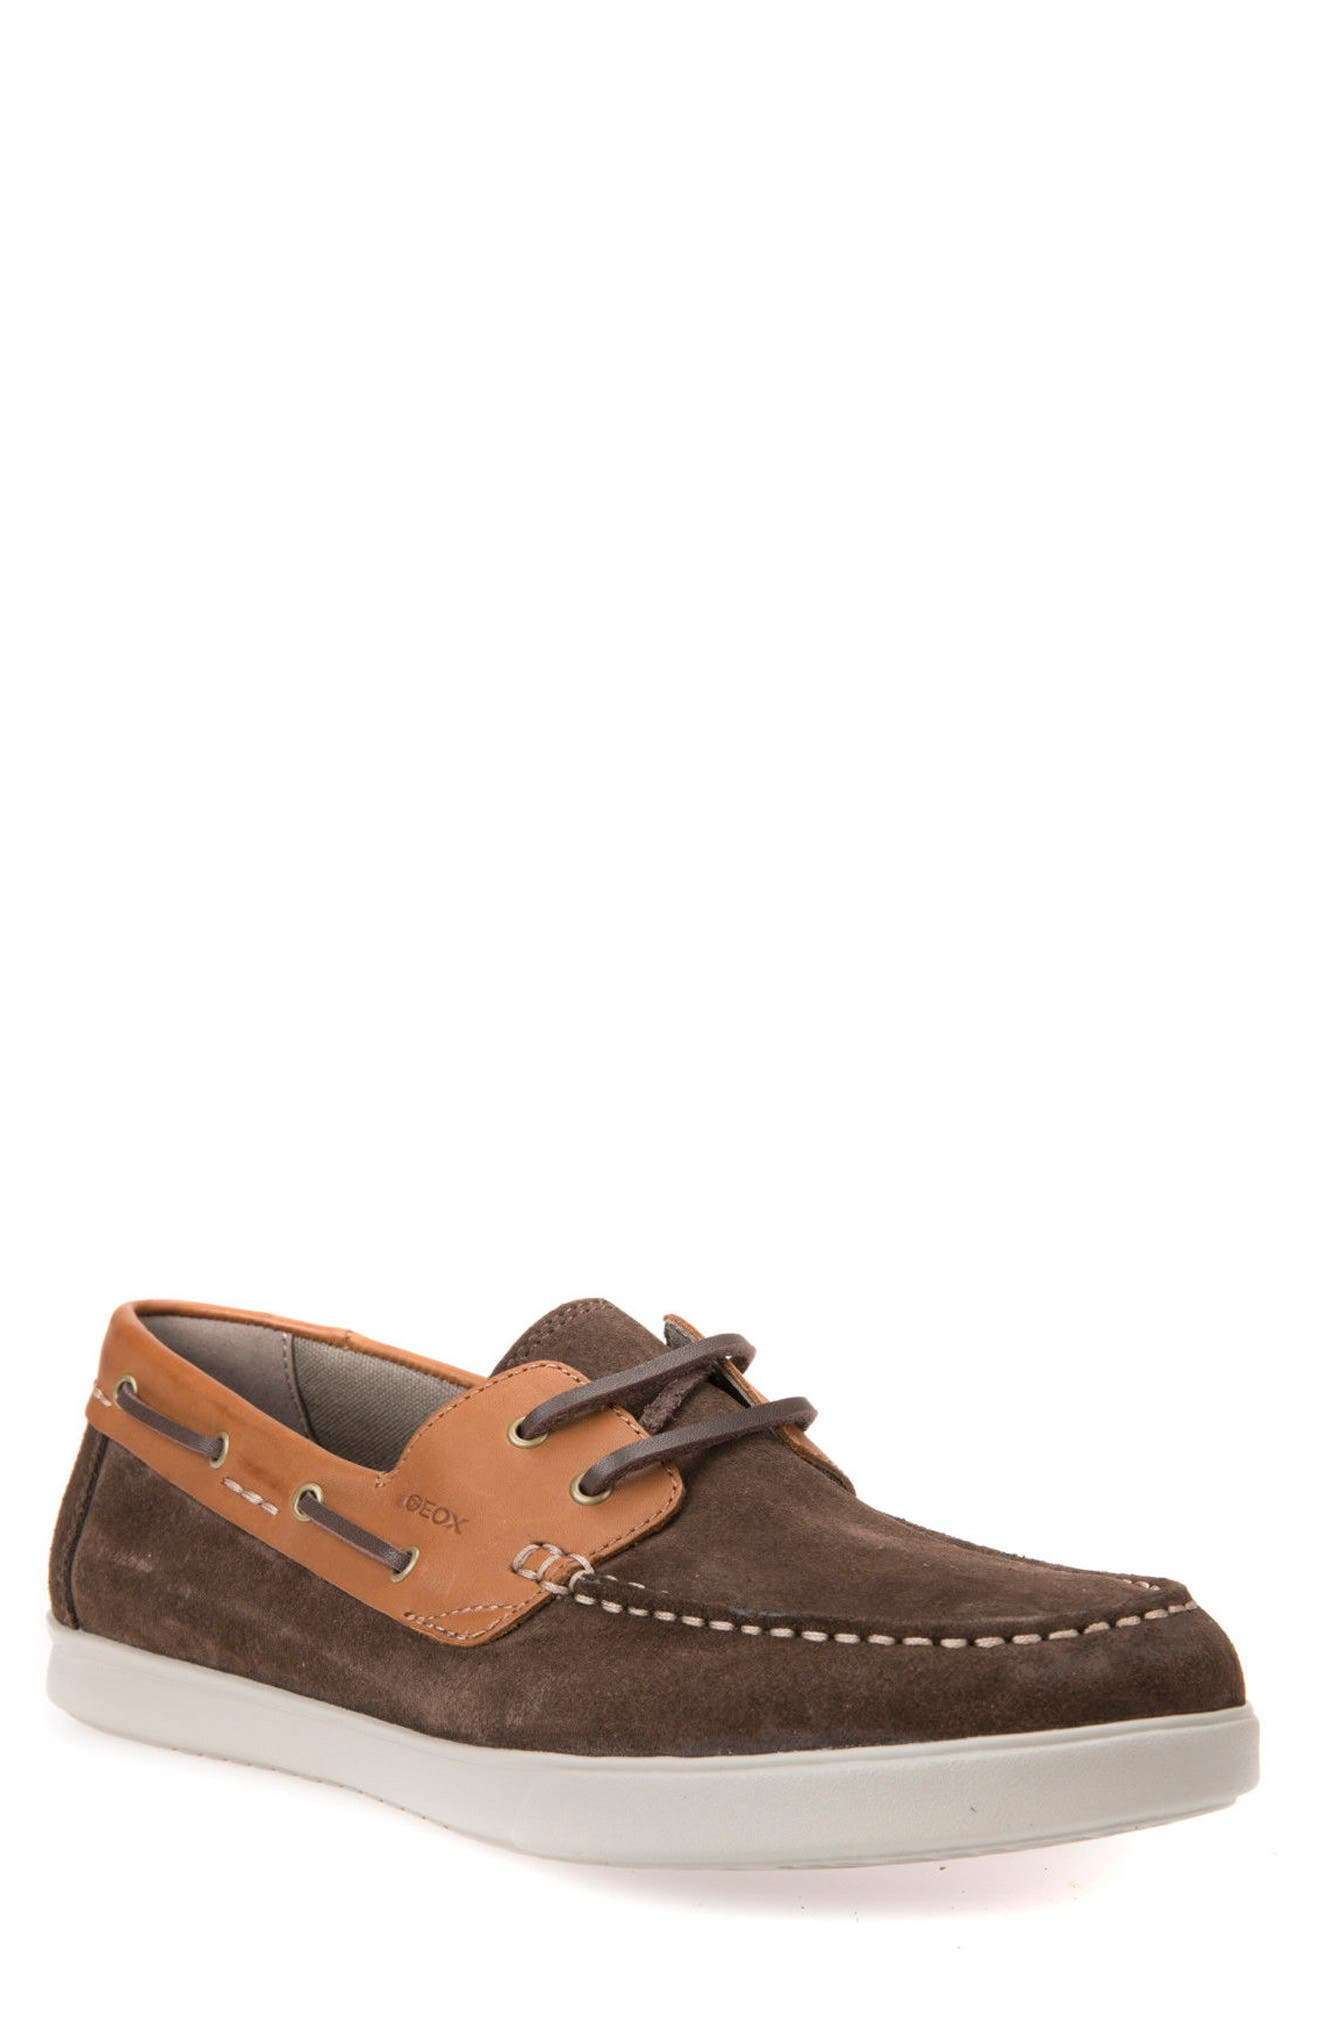 Walee 2 Boat Shoe,                             Main thumbnail 1, color,                             200